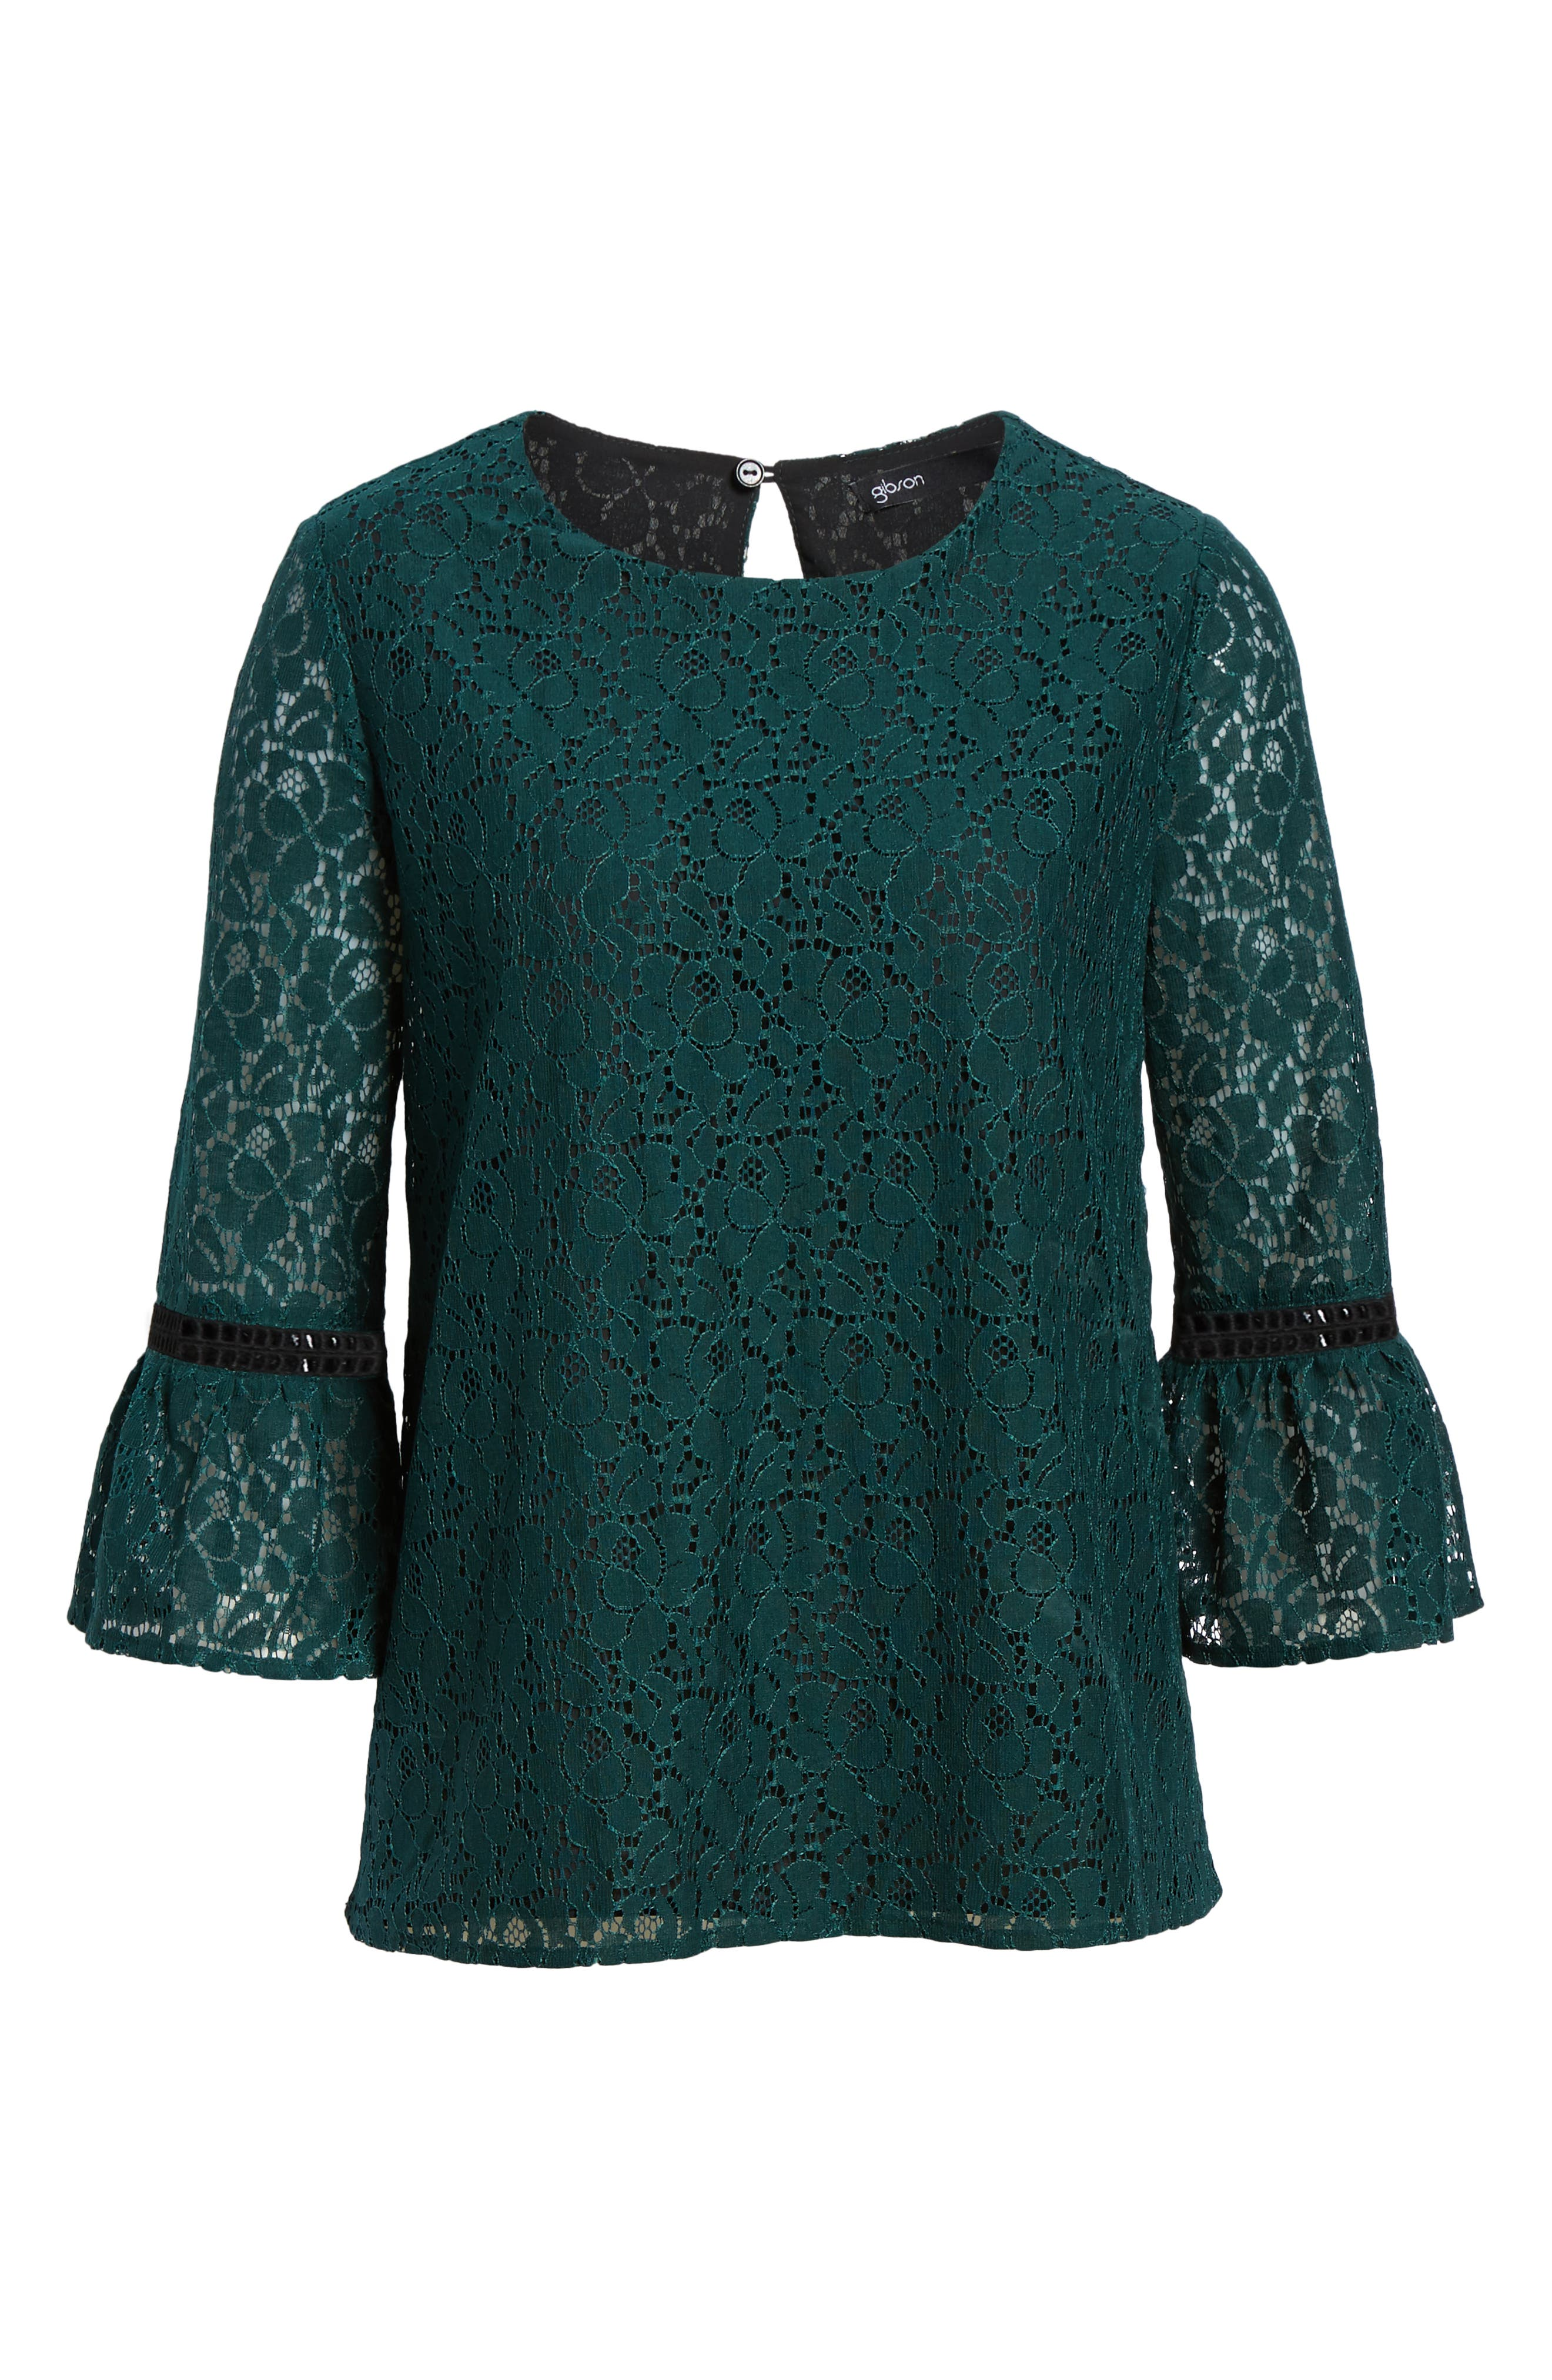 x Glam Squad Erin Allover Lace Bell Sleeve Top,                             Alternate thumbnail 7, color,                             GREEN